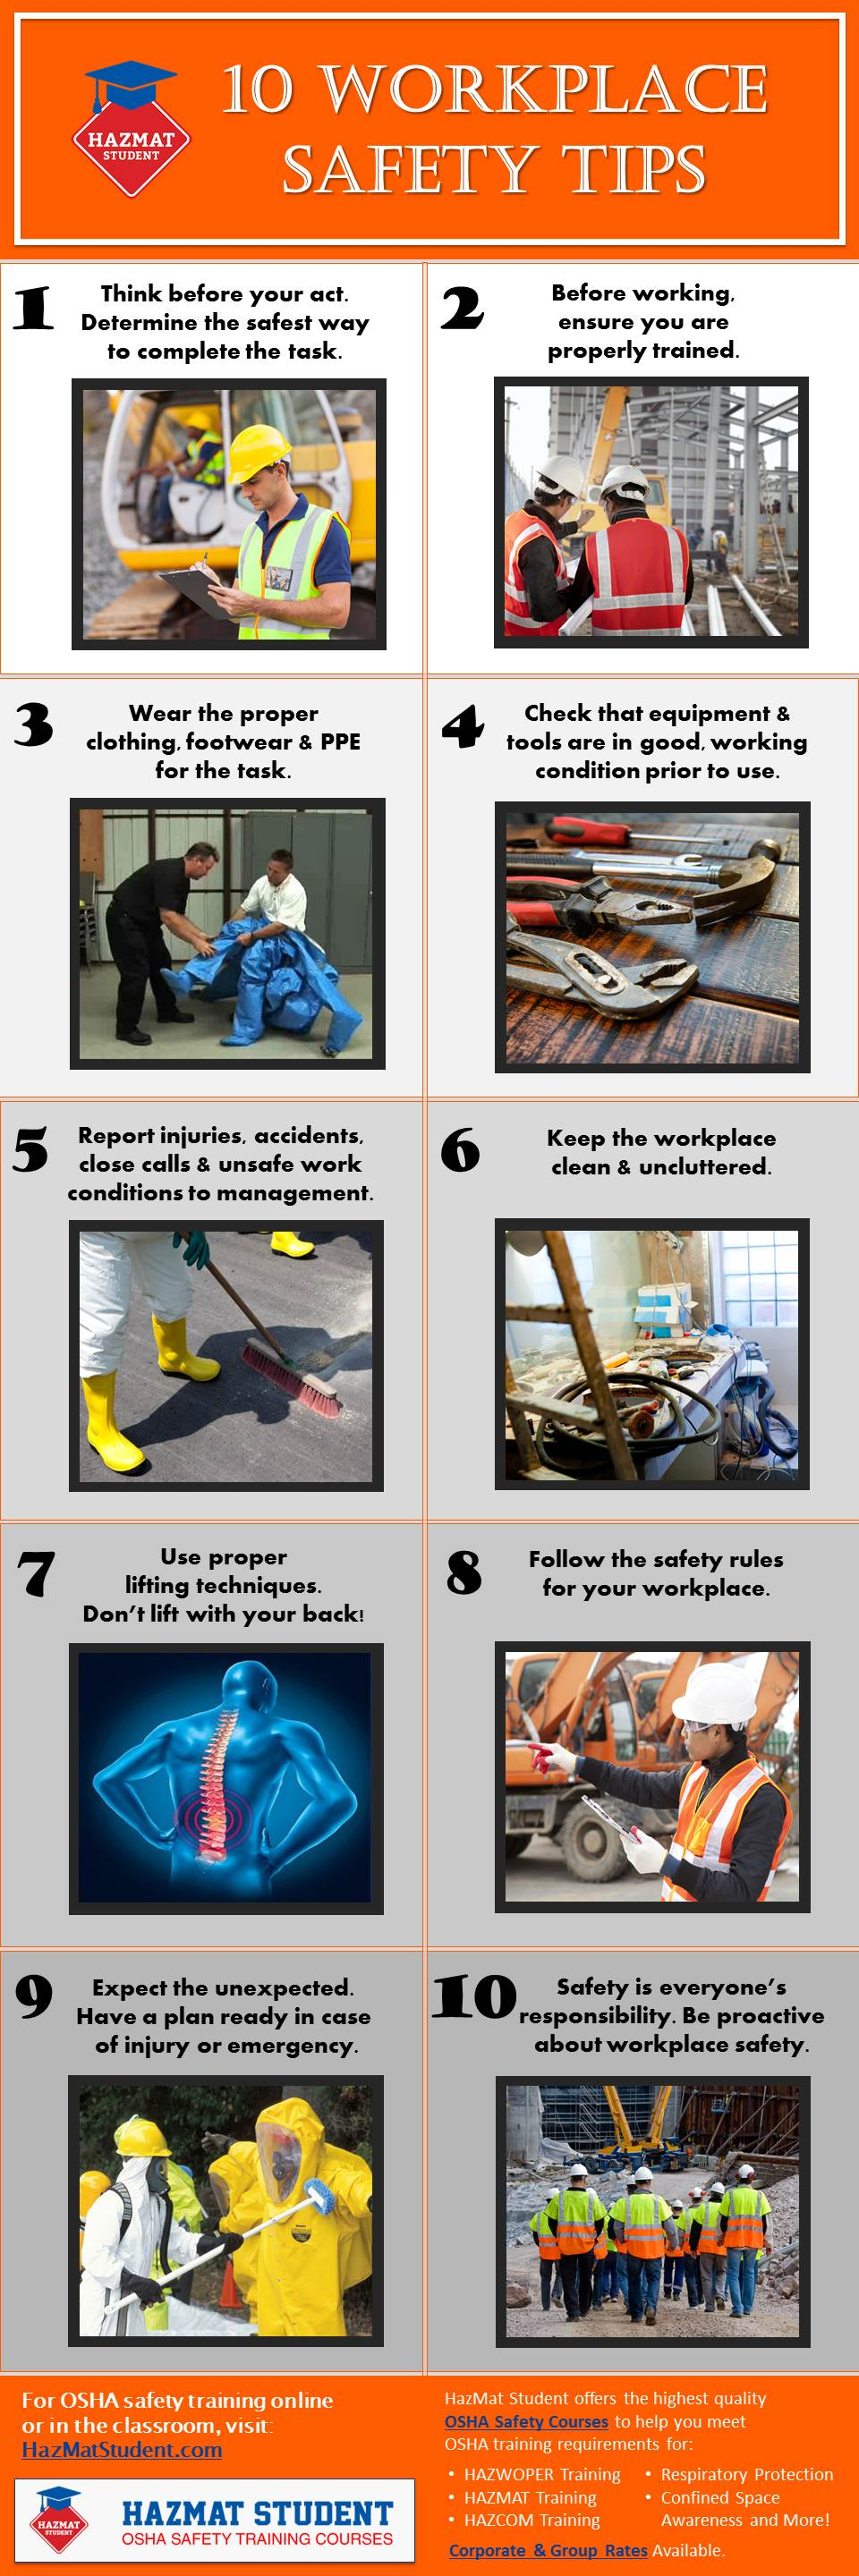 10 workplace safety tips infographic